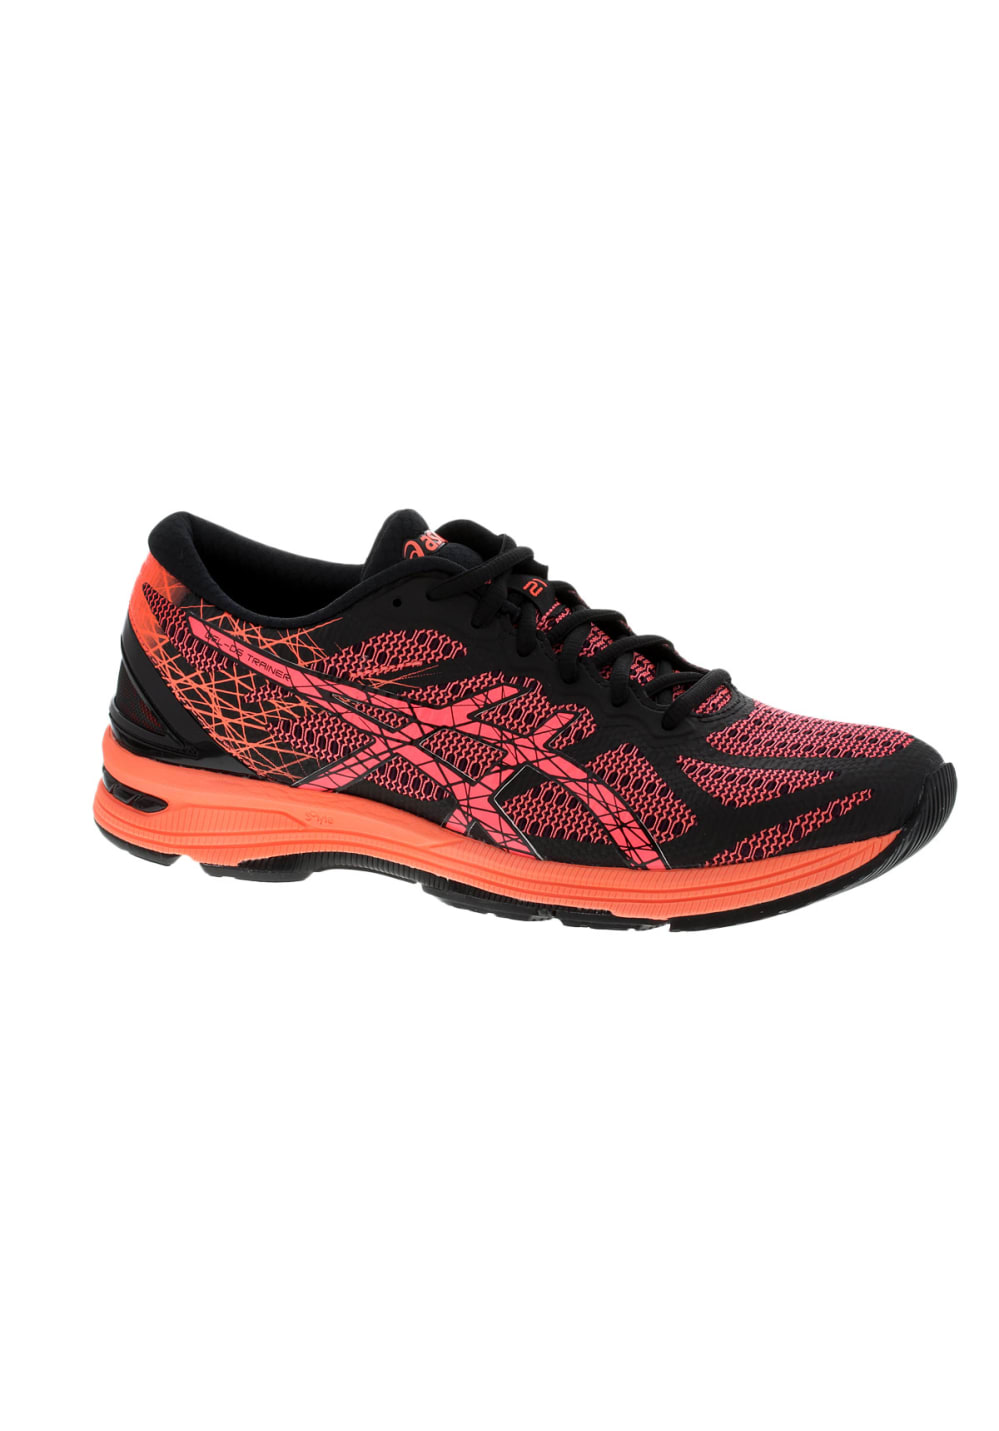 timeless design 0e815 990eb ASICS GEL-DS Trainer 21 - Running shoes for Women - Black